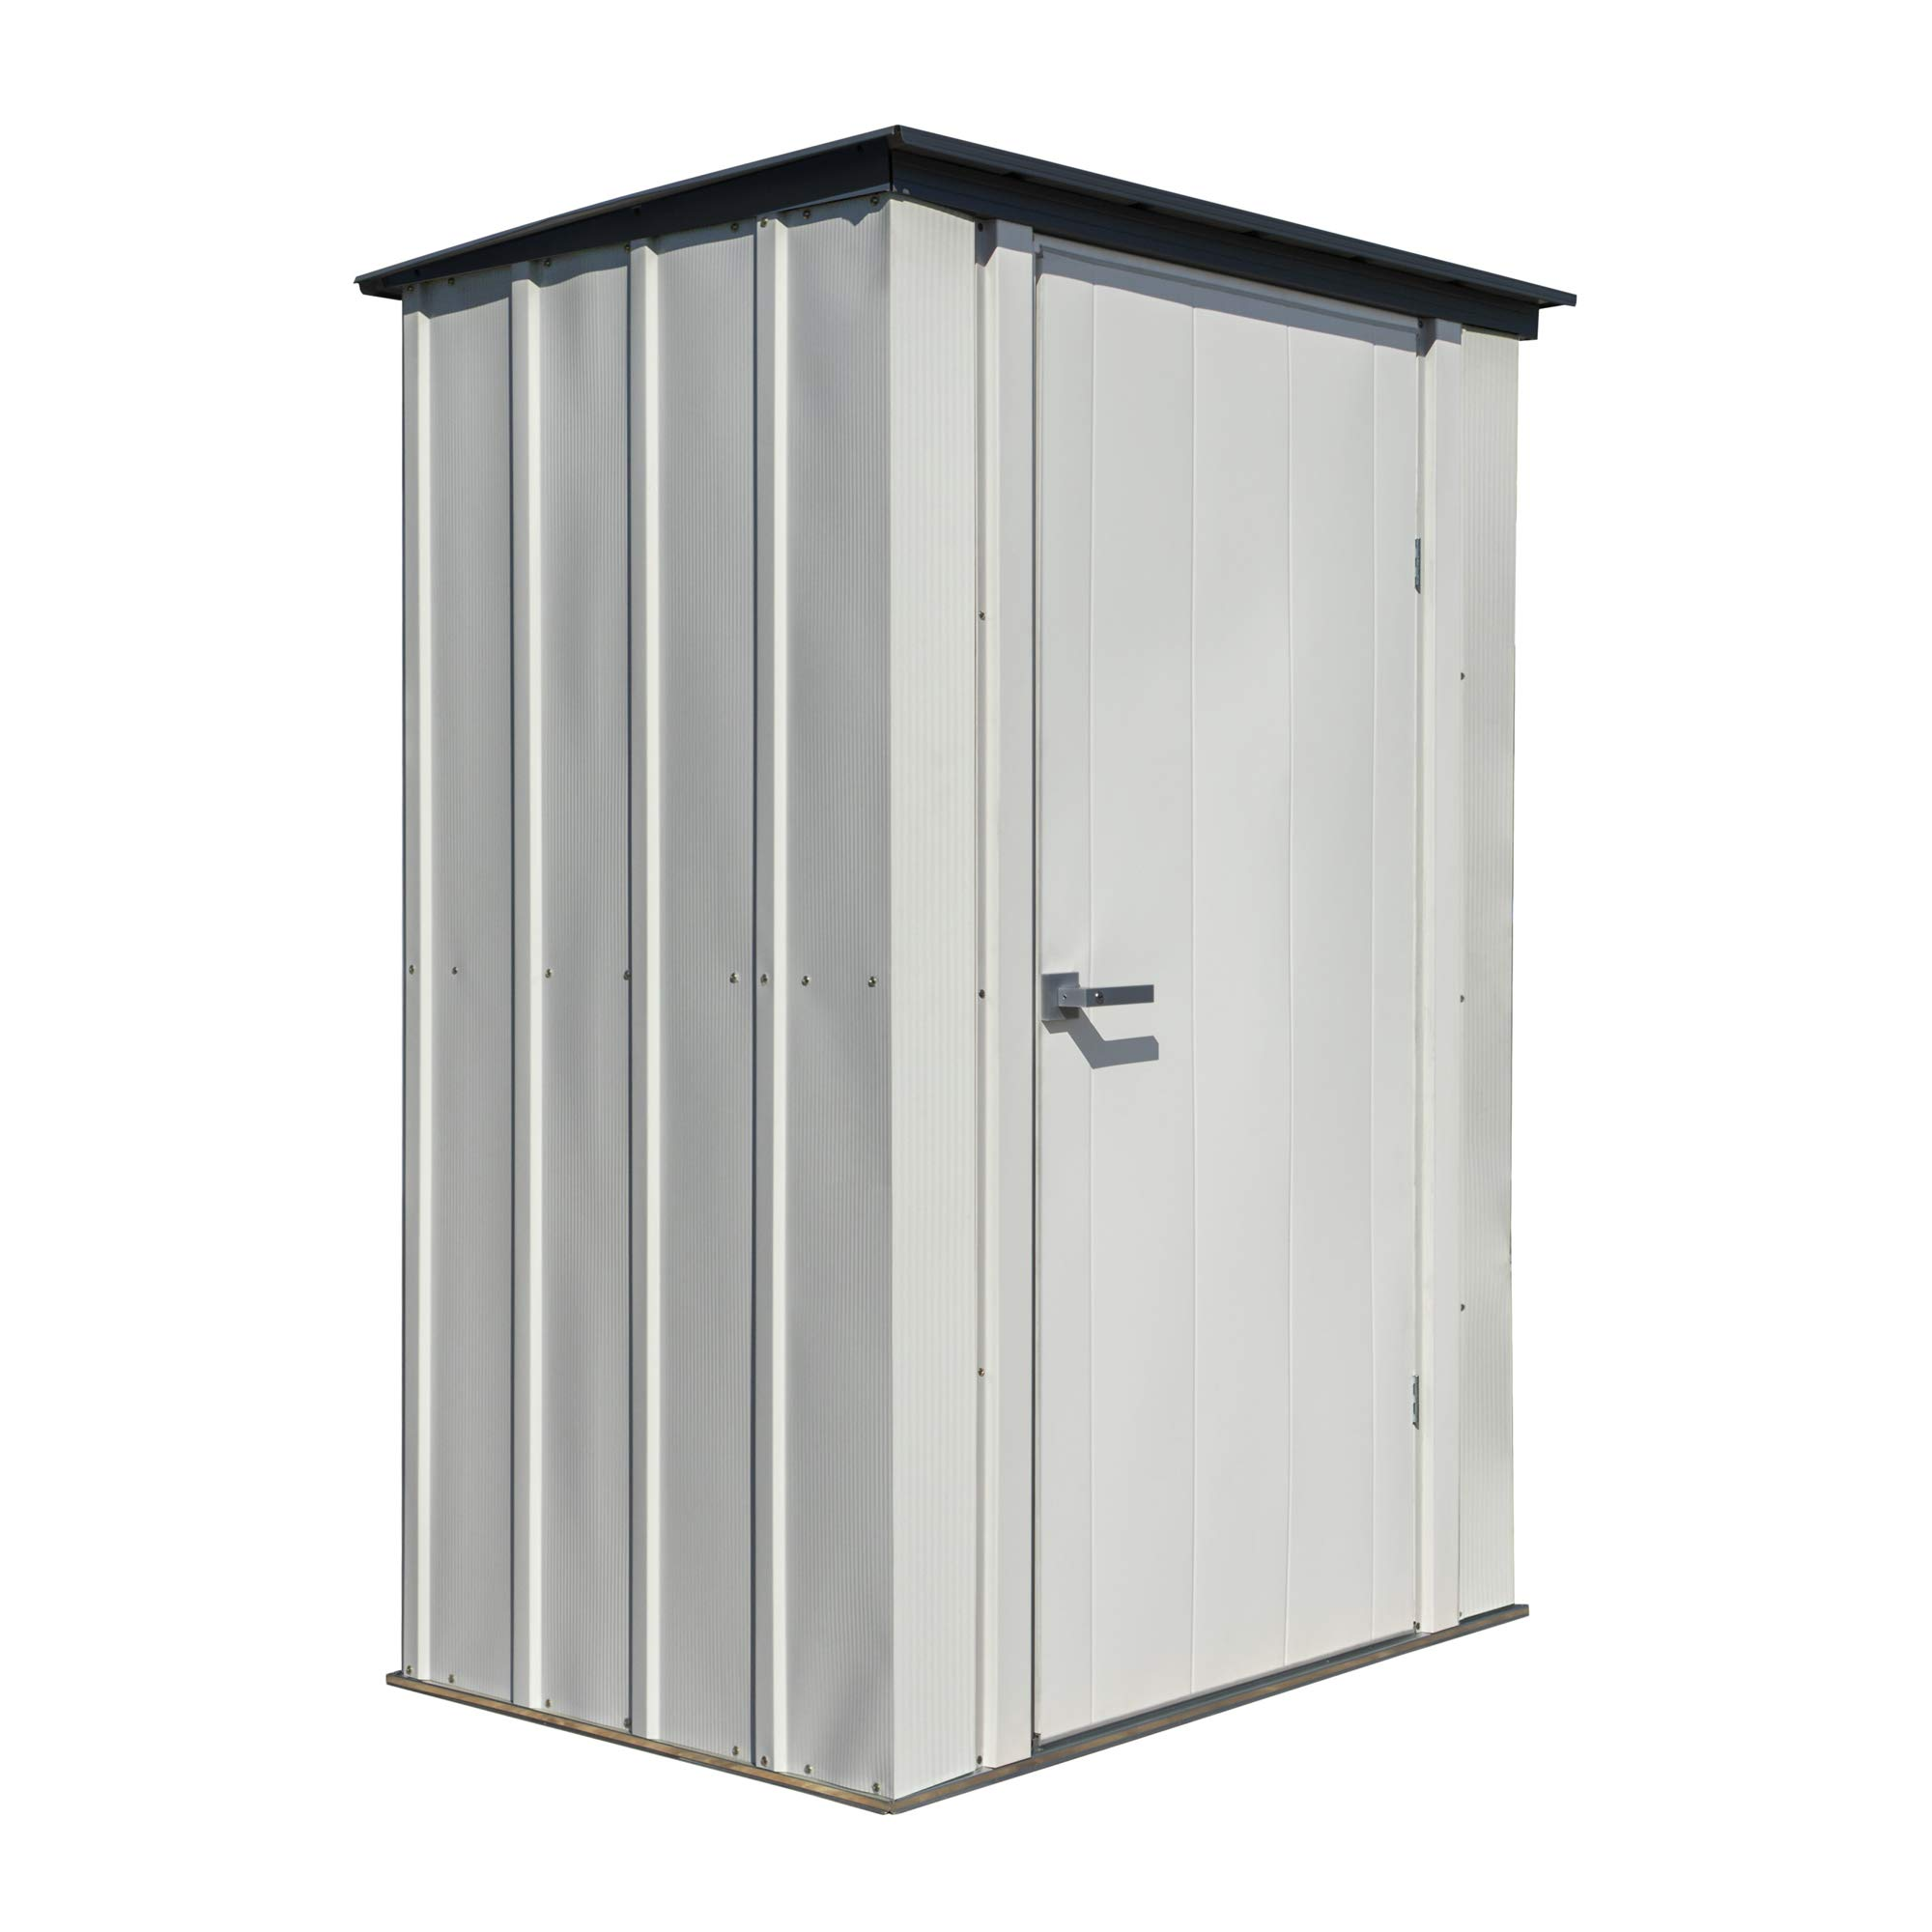 Arrow Shed Designed 4' x 3' x 6' Compact Outdoor